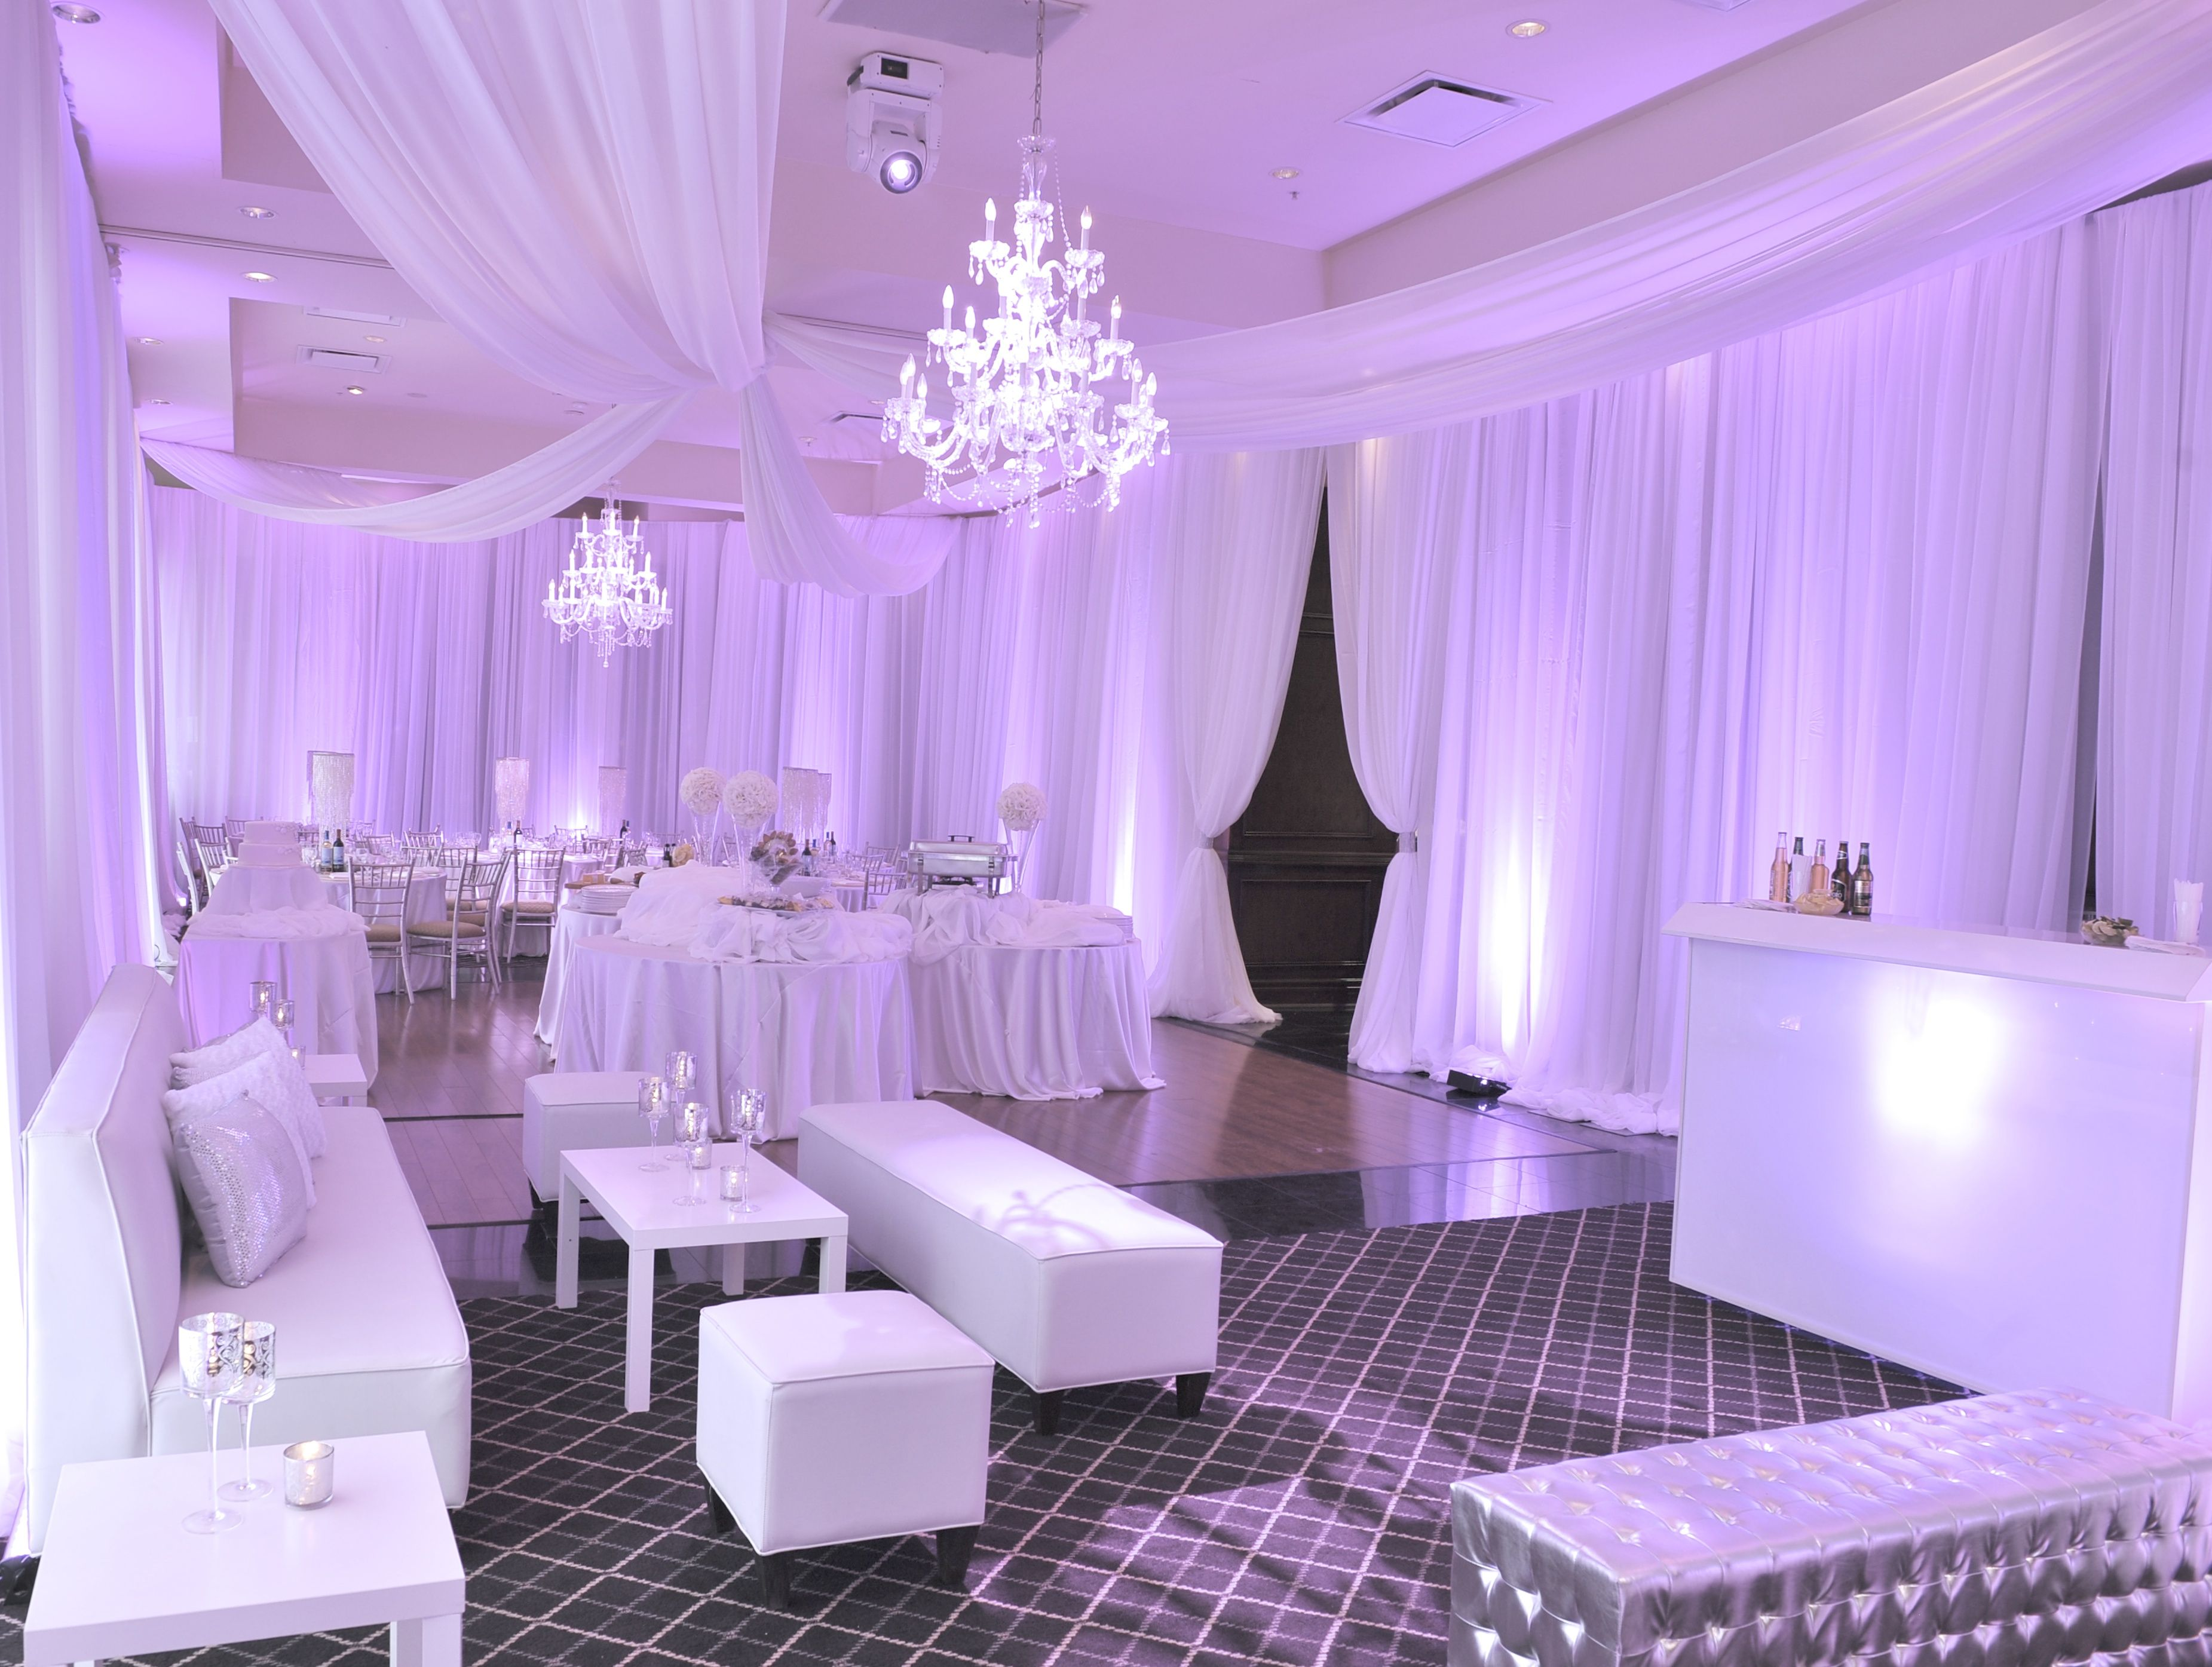 Paradise banquet hall vaughan on prince room for Wedding reception room decoration ideas